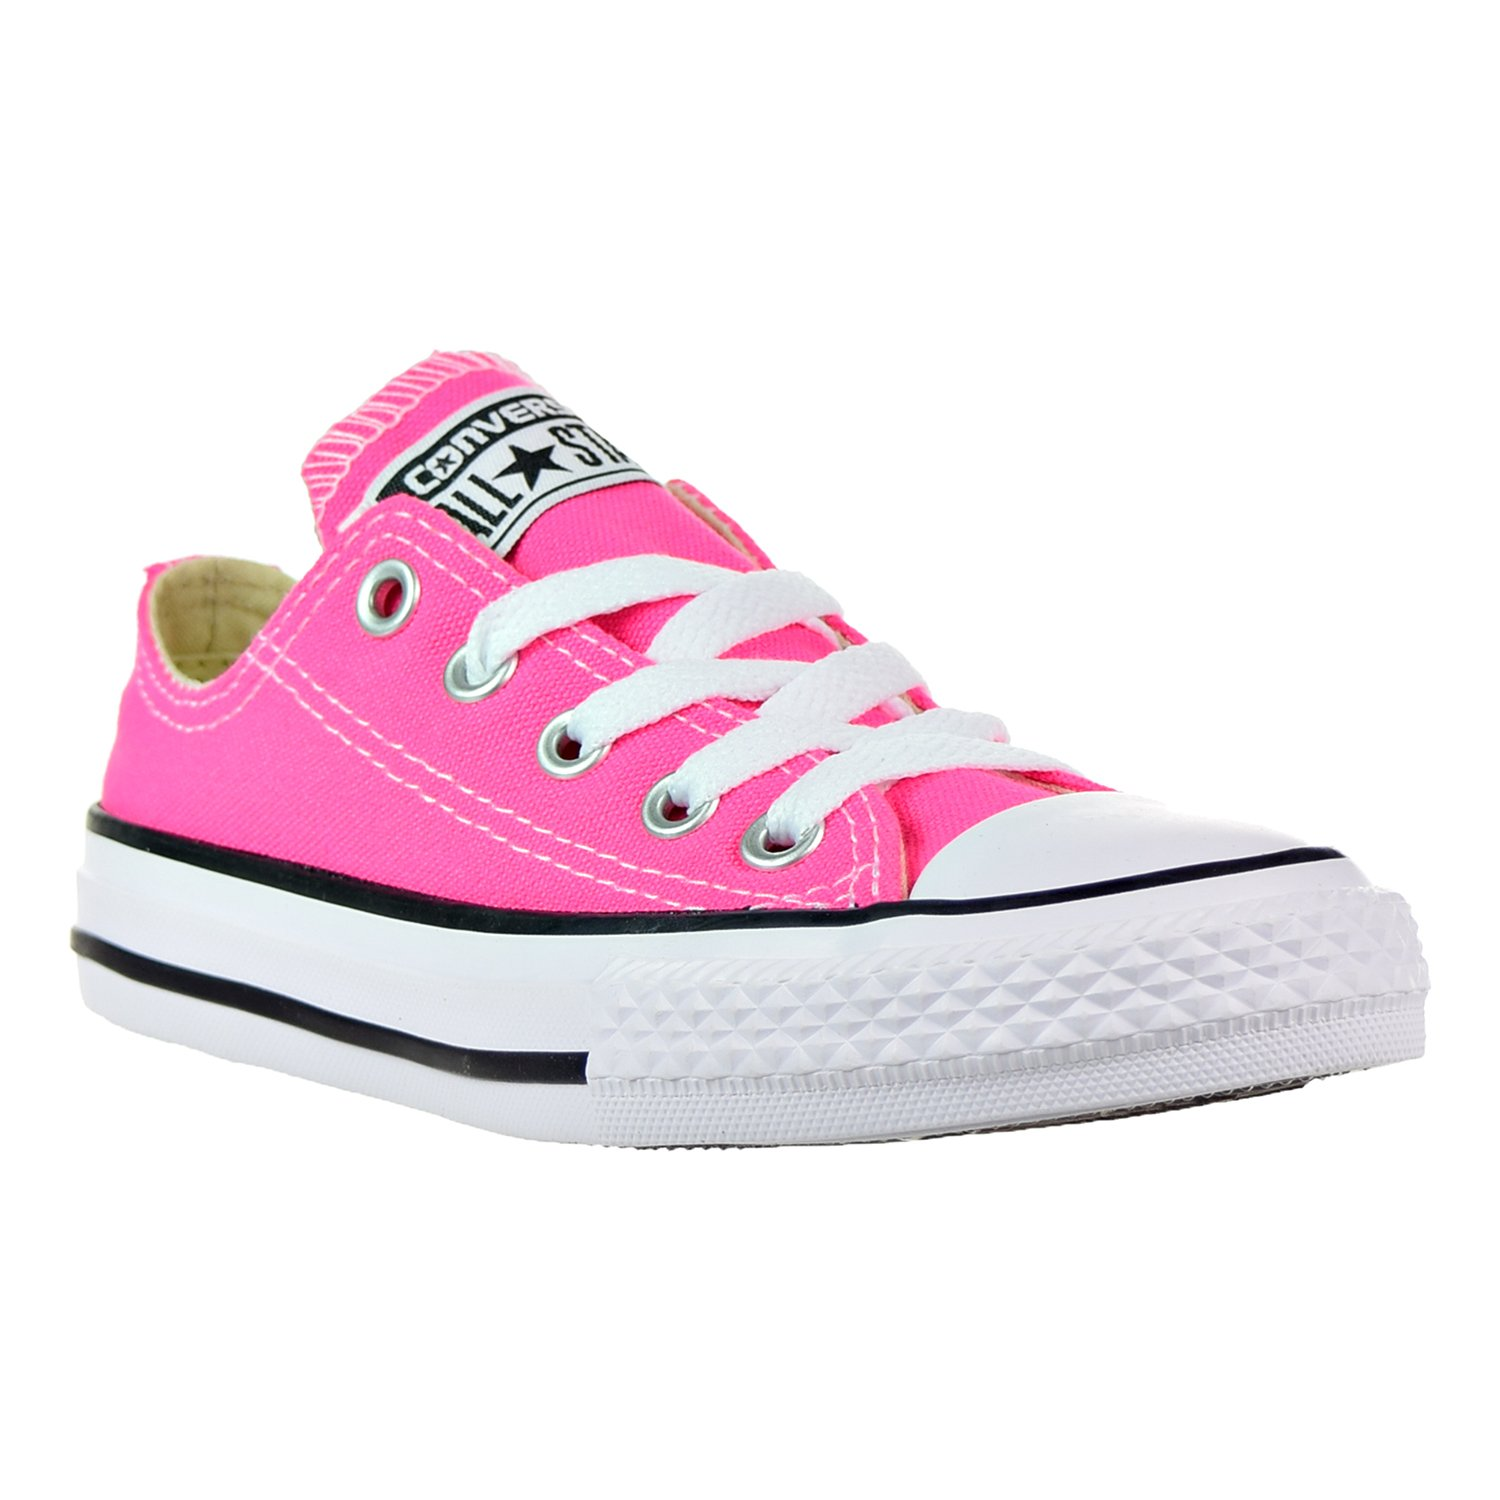 Converse Chuck Taylor All Star Season Ox, Unisex Sneaker Rosa Rosa Sneaker (Pink Champagne) 6b2dd4